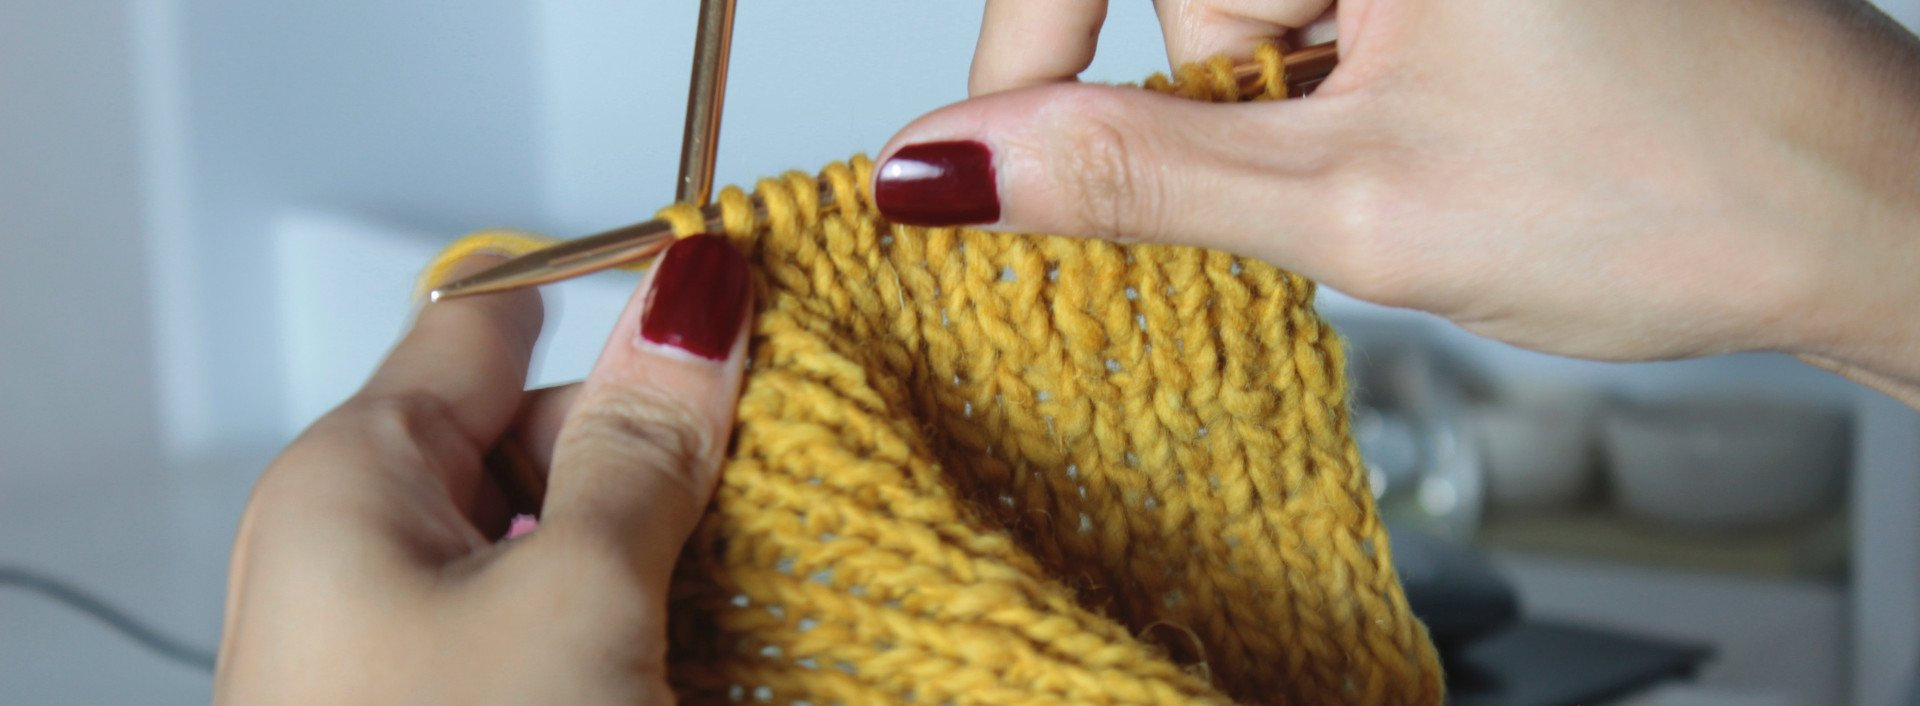 Two hands with red fingernails knit with yellow yarn while learning knitting vocabulary.